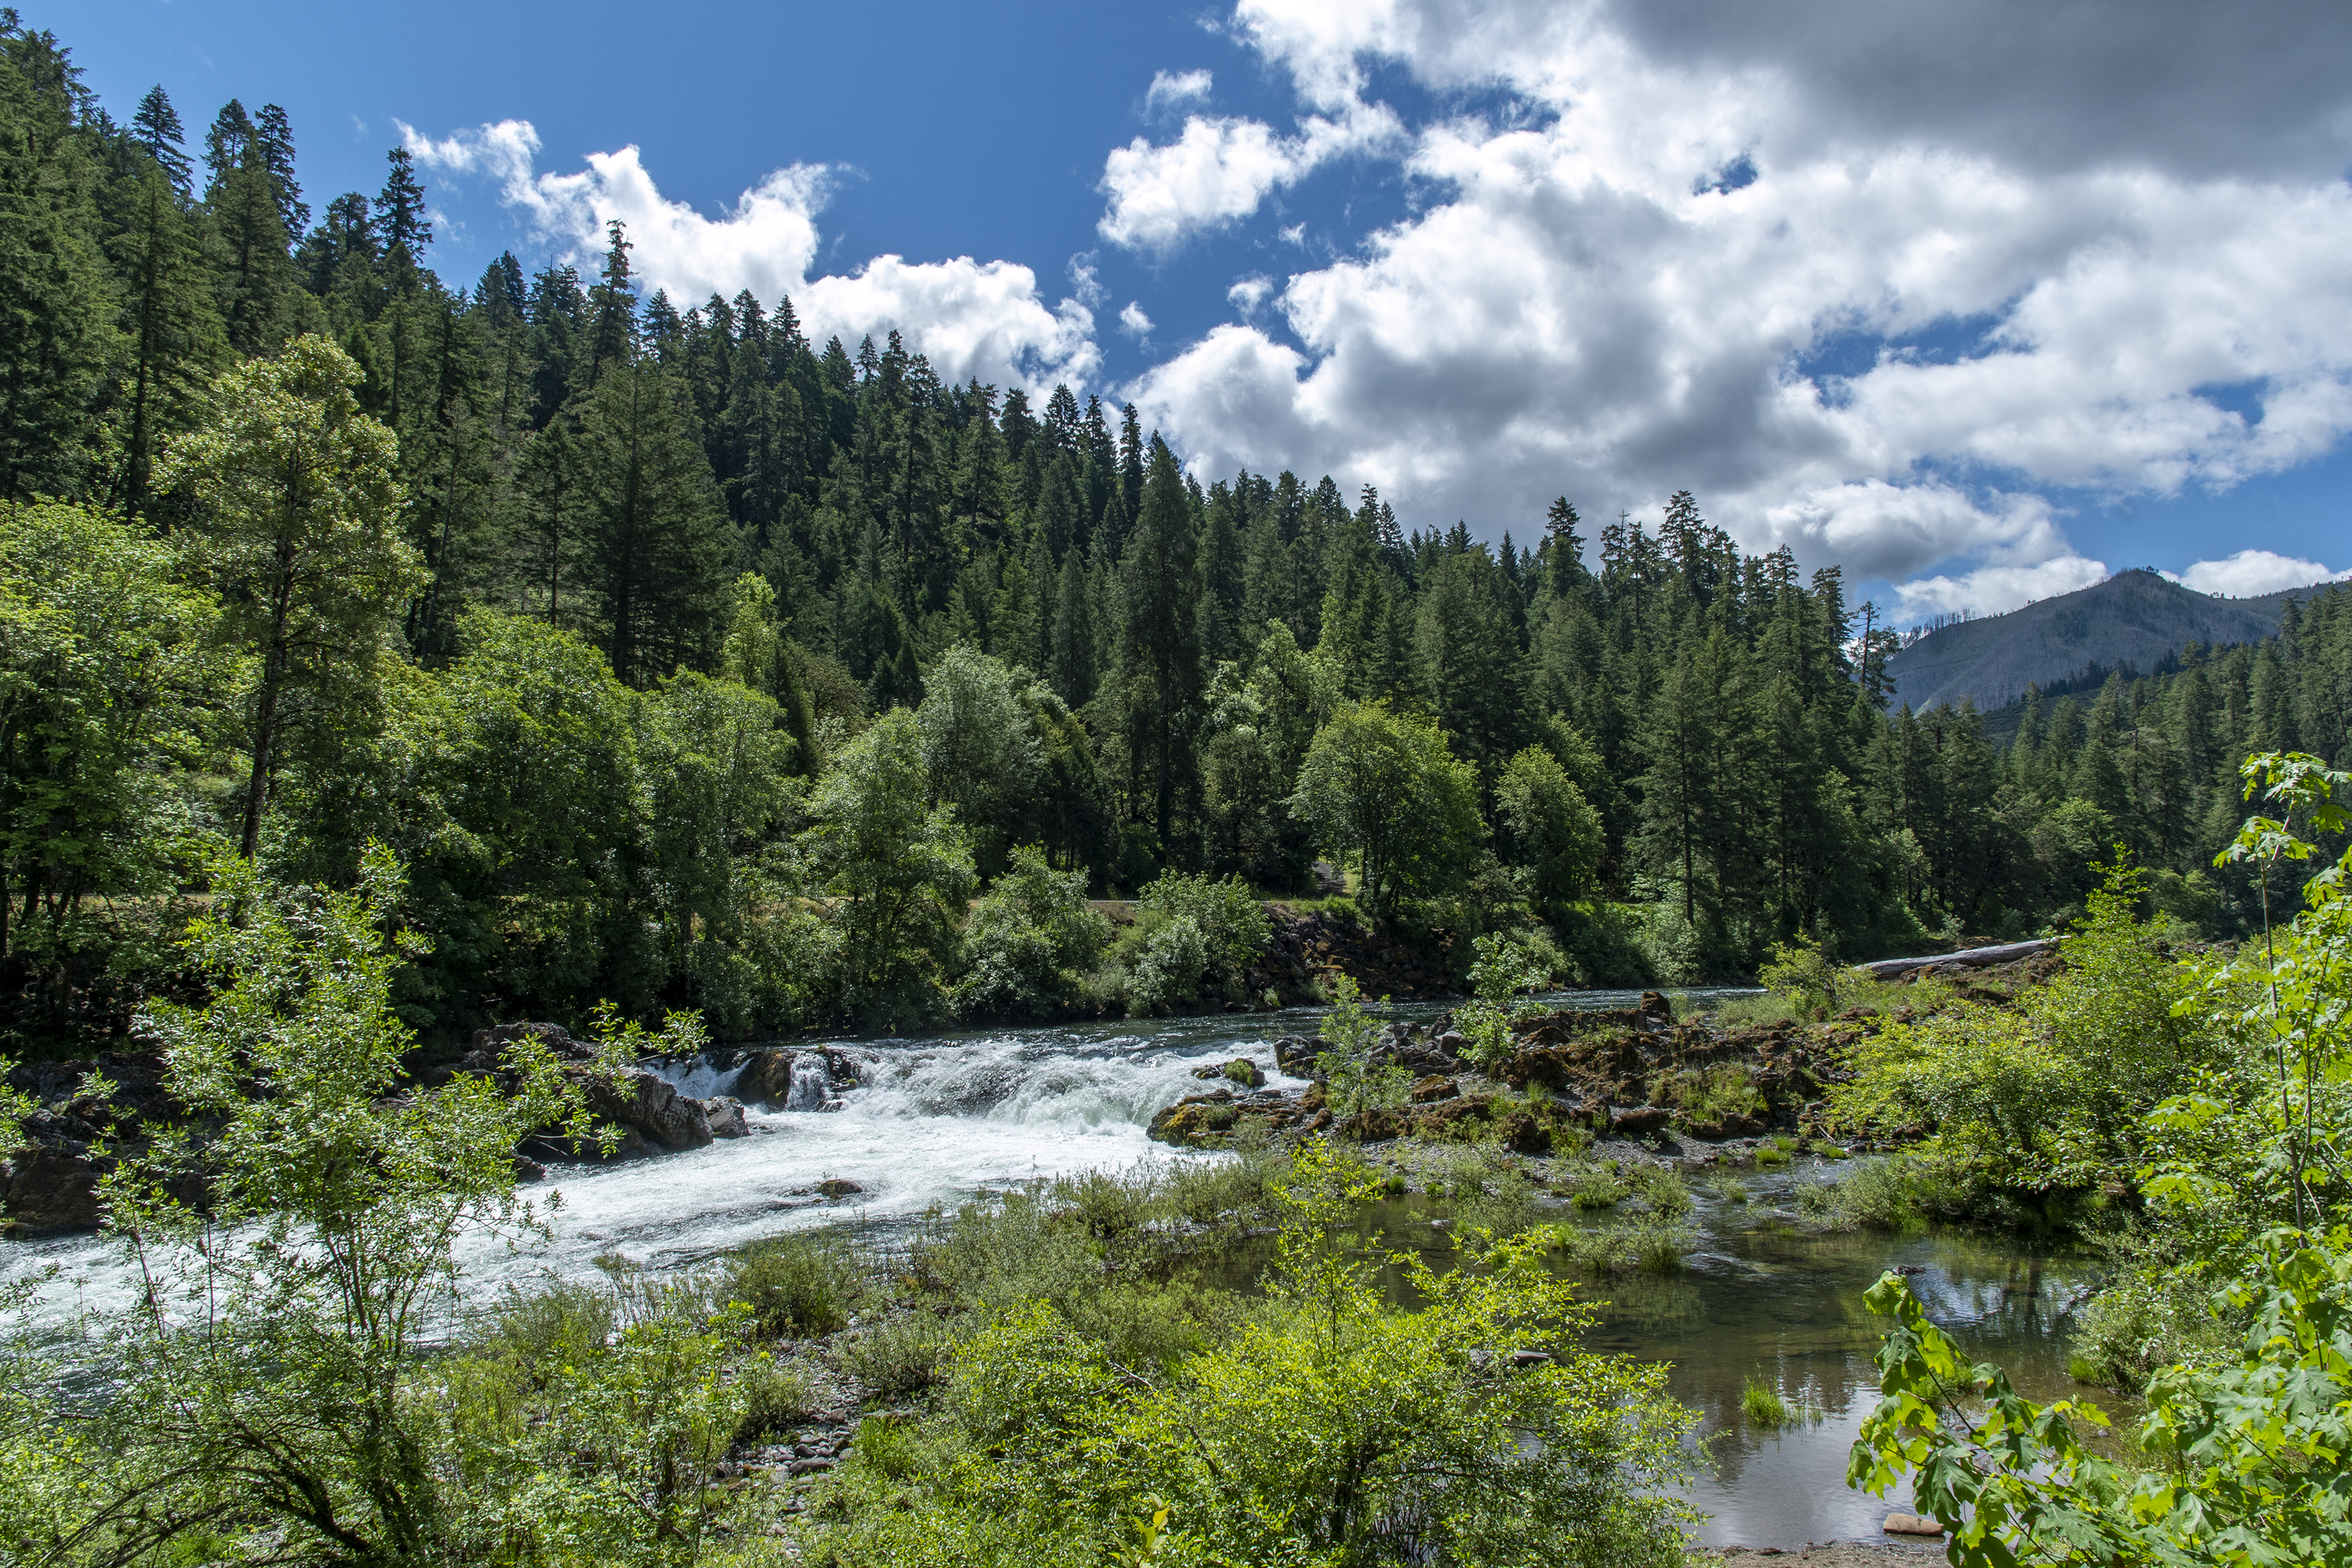 Swiftwater Trail north umpqua river deadline falls